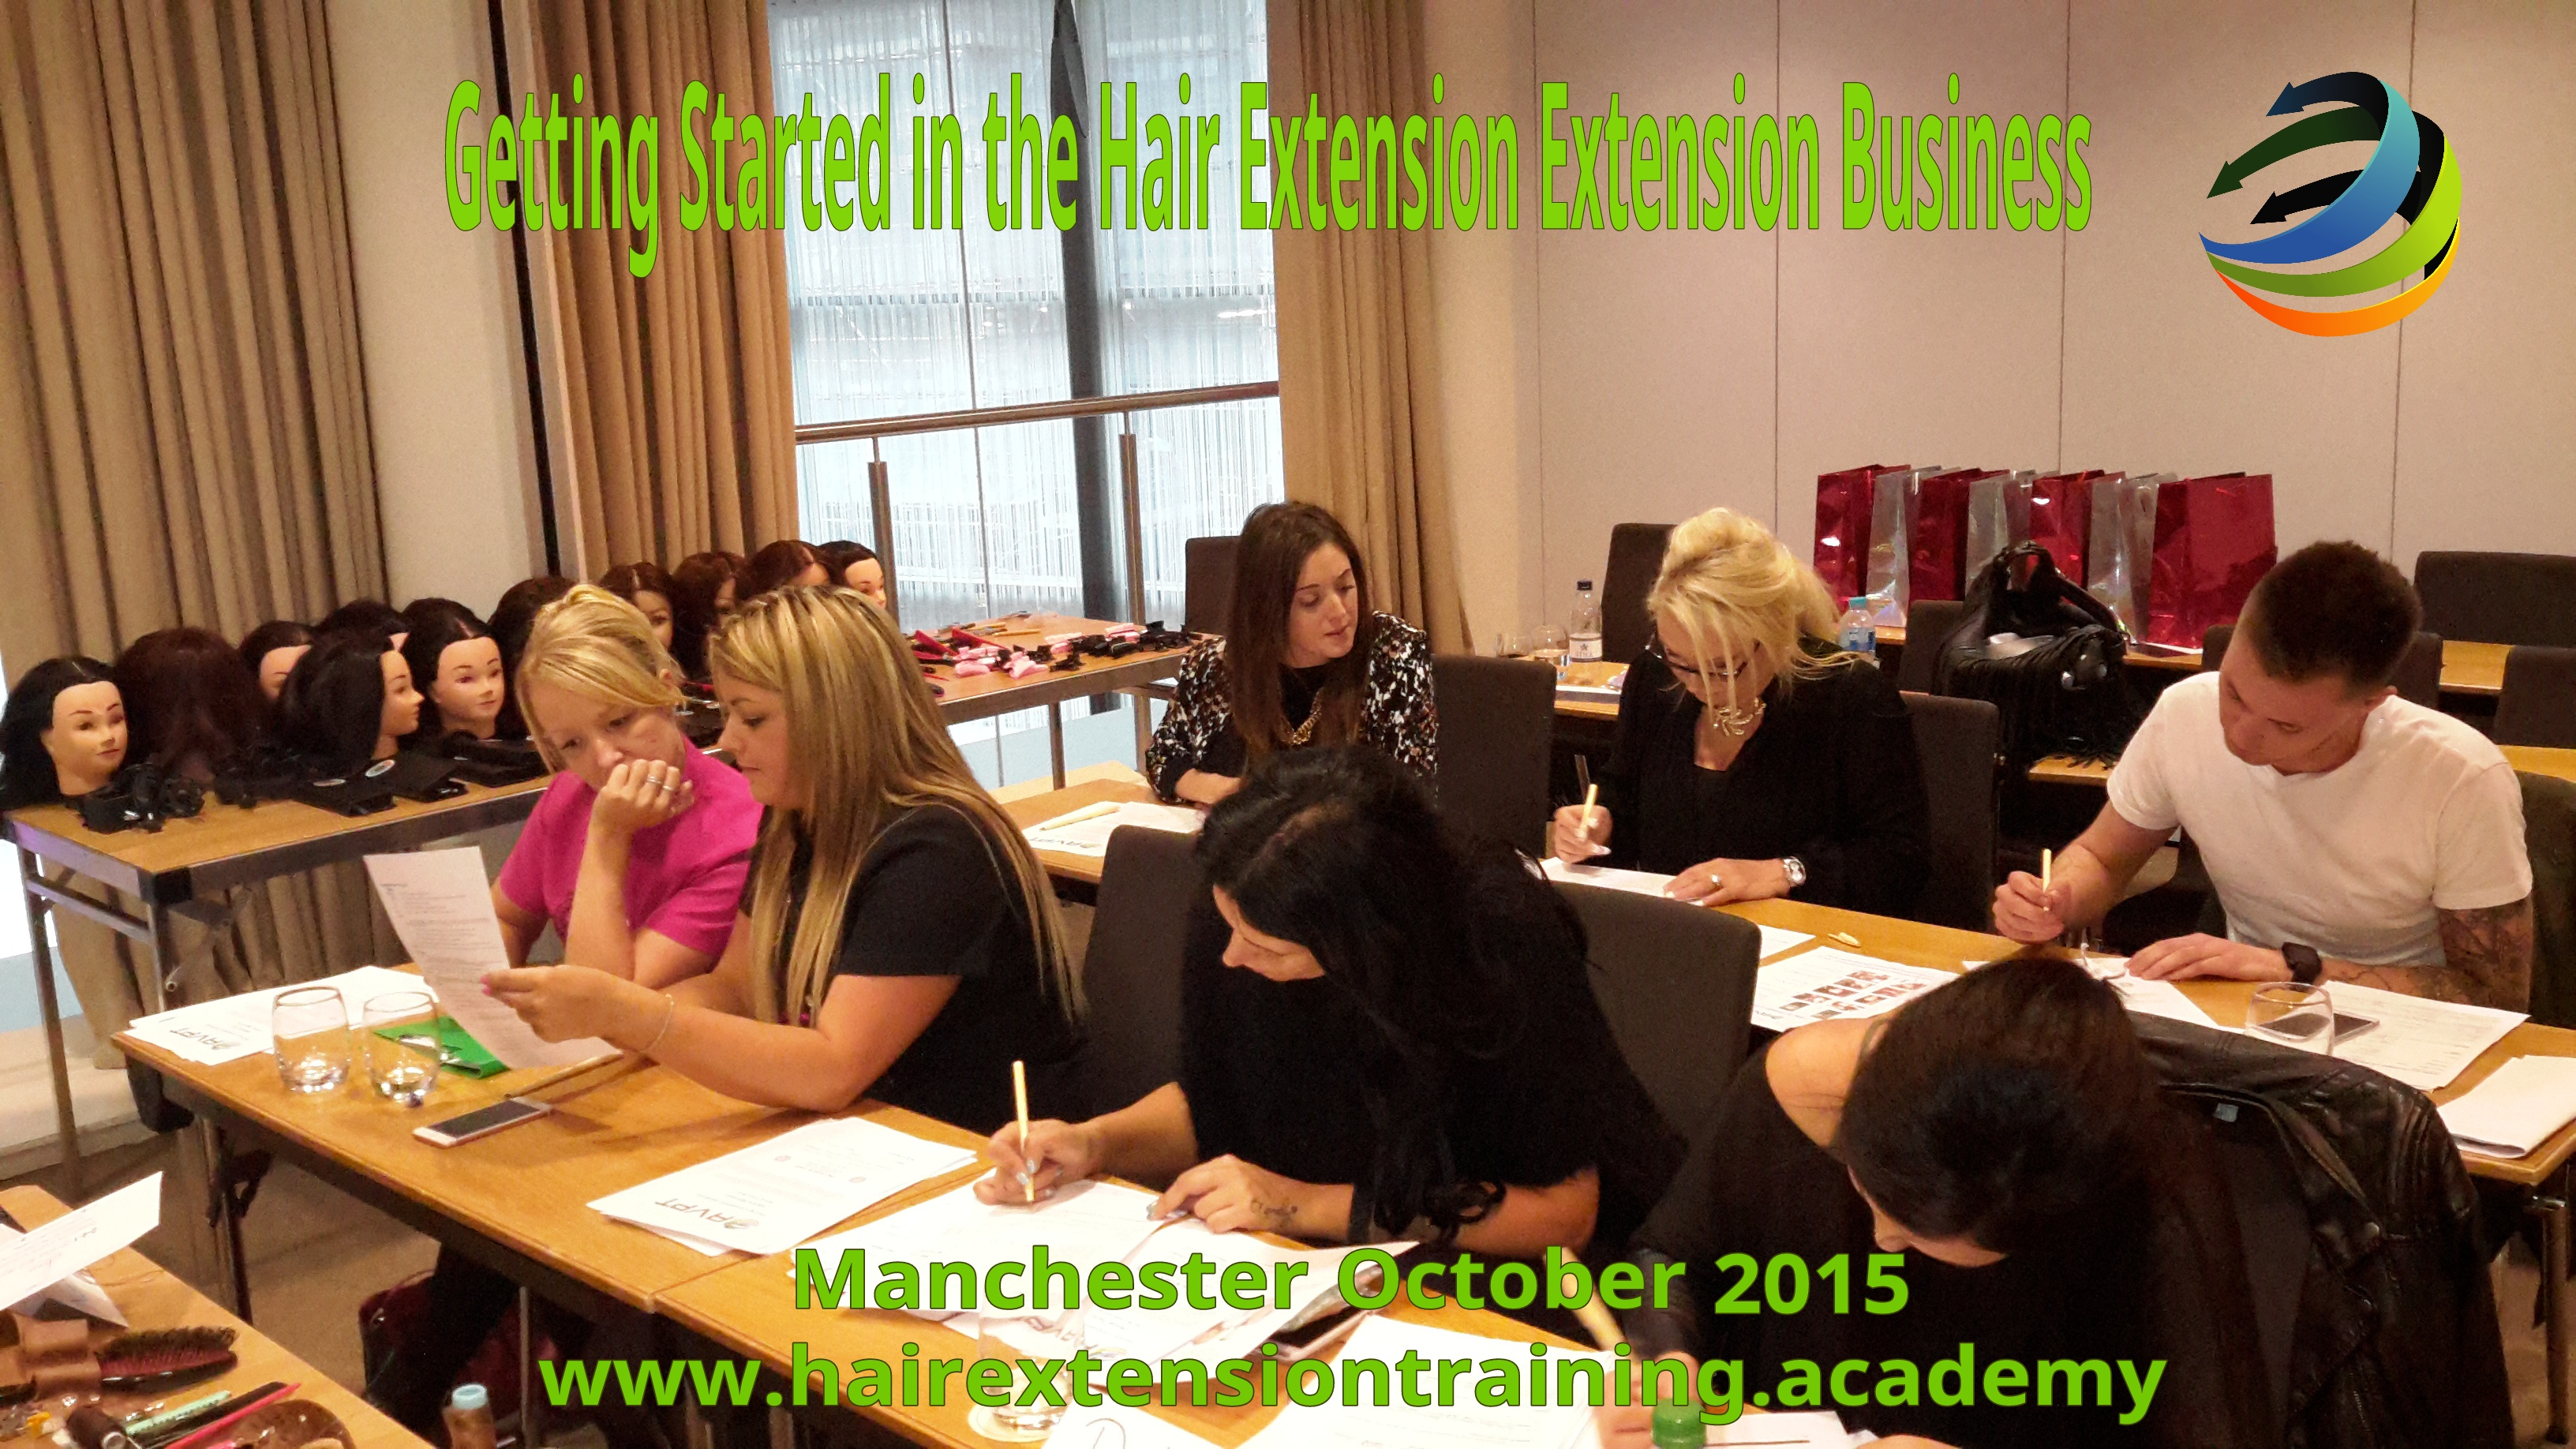 Hair extension training academy diane shawe london